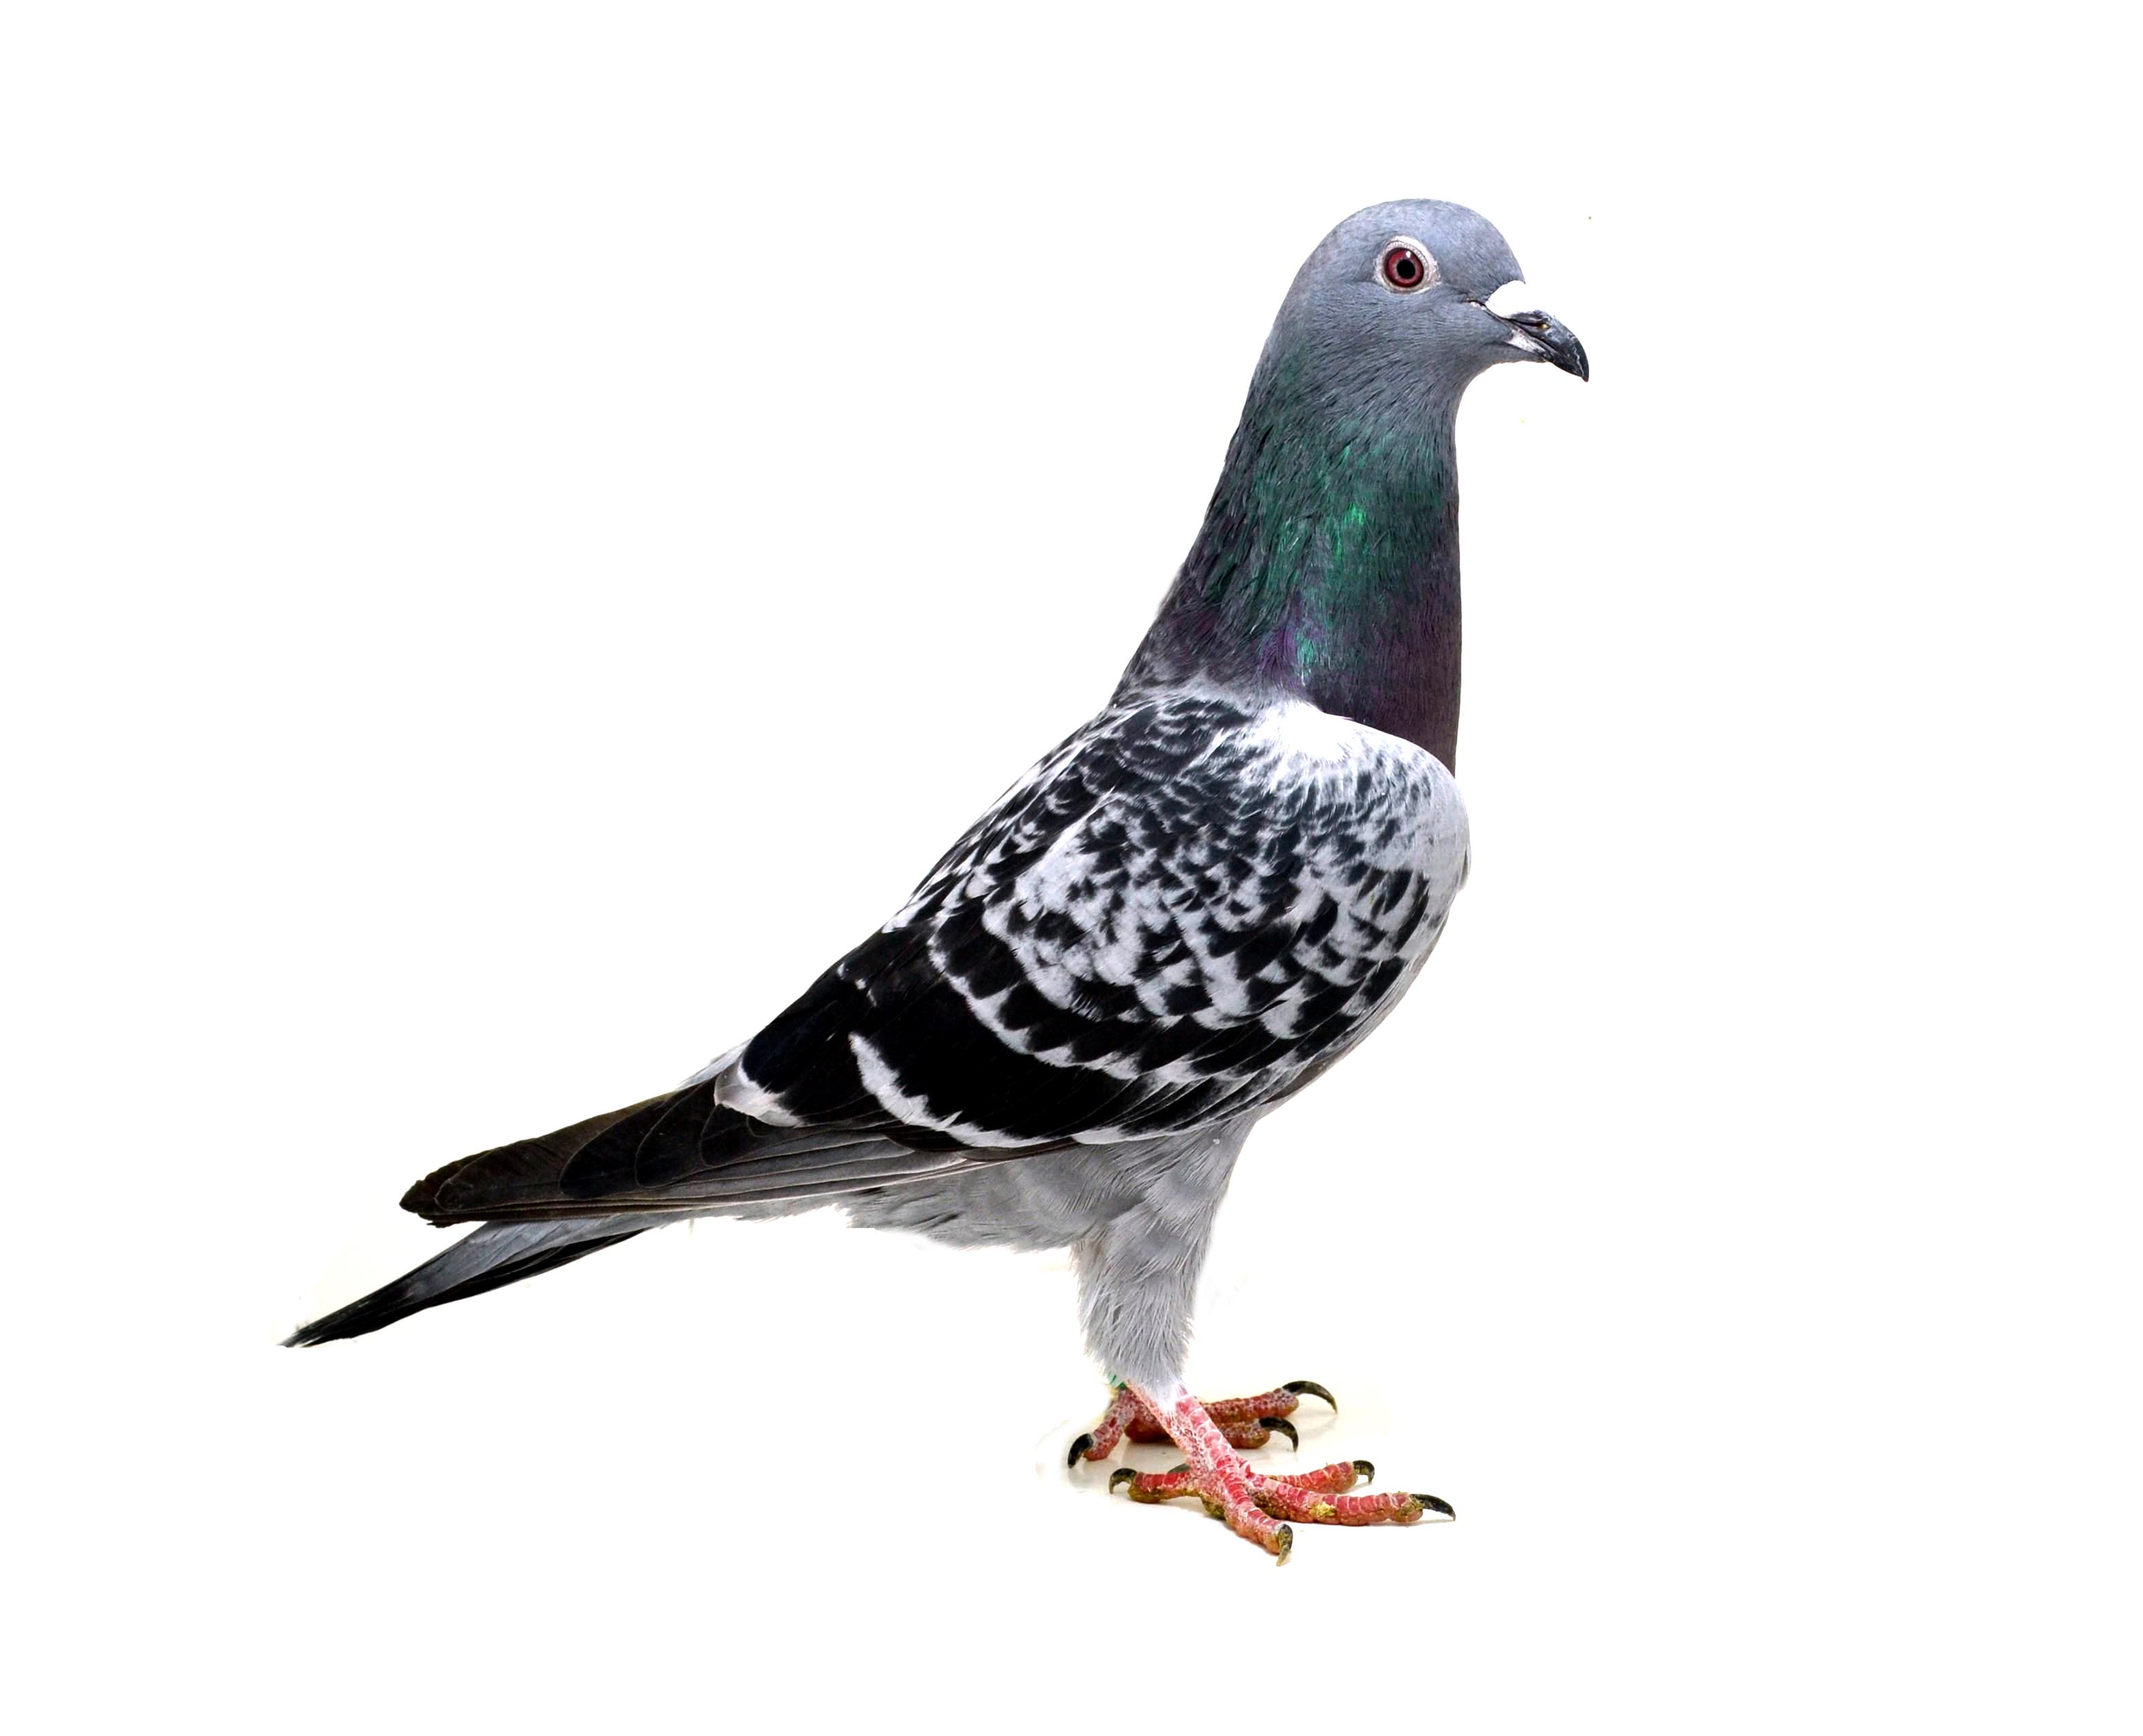 RO 18 552155 F - Half sister 1 Ace pigeon Extrem, 3 Final Extrem etc